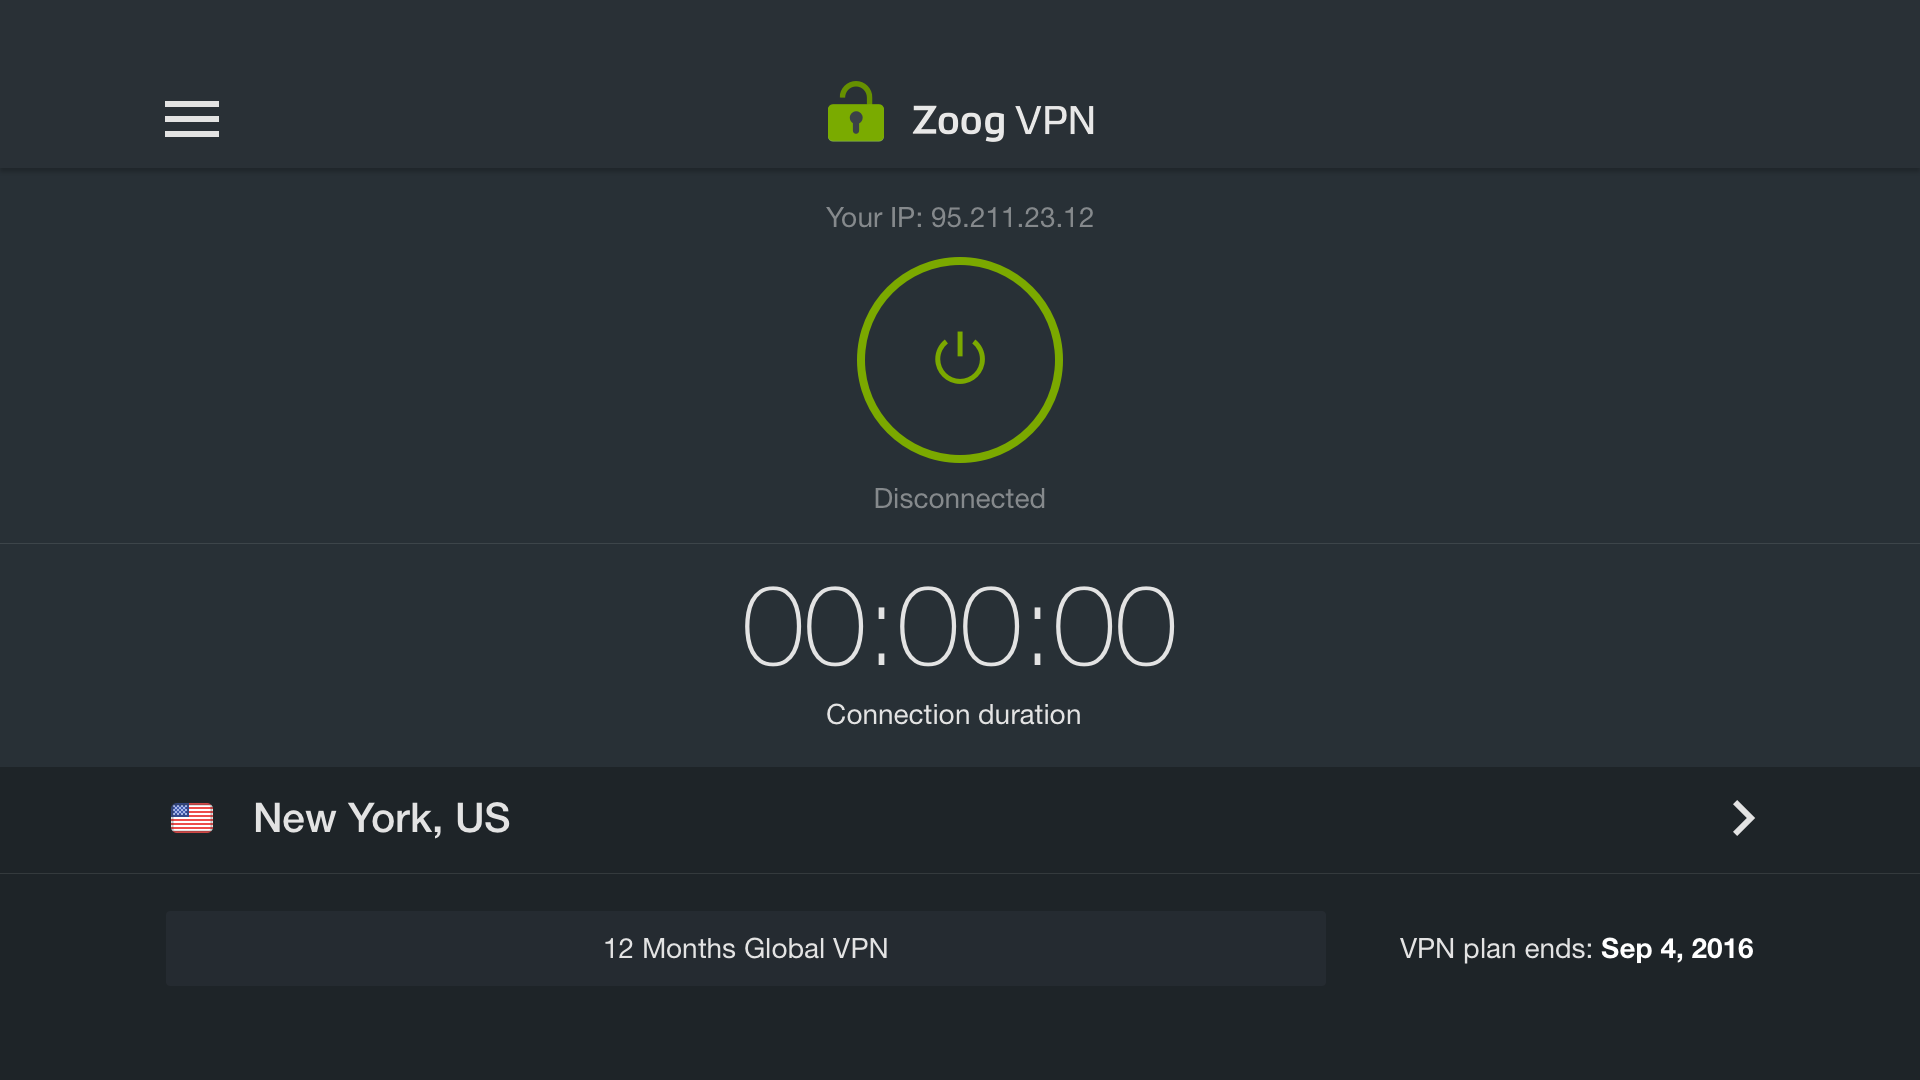 Zoog VPN - Internet freedom, security and privacy